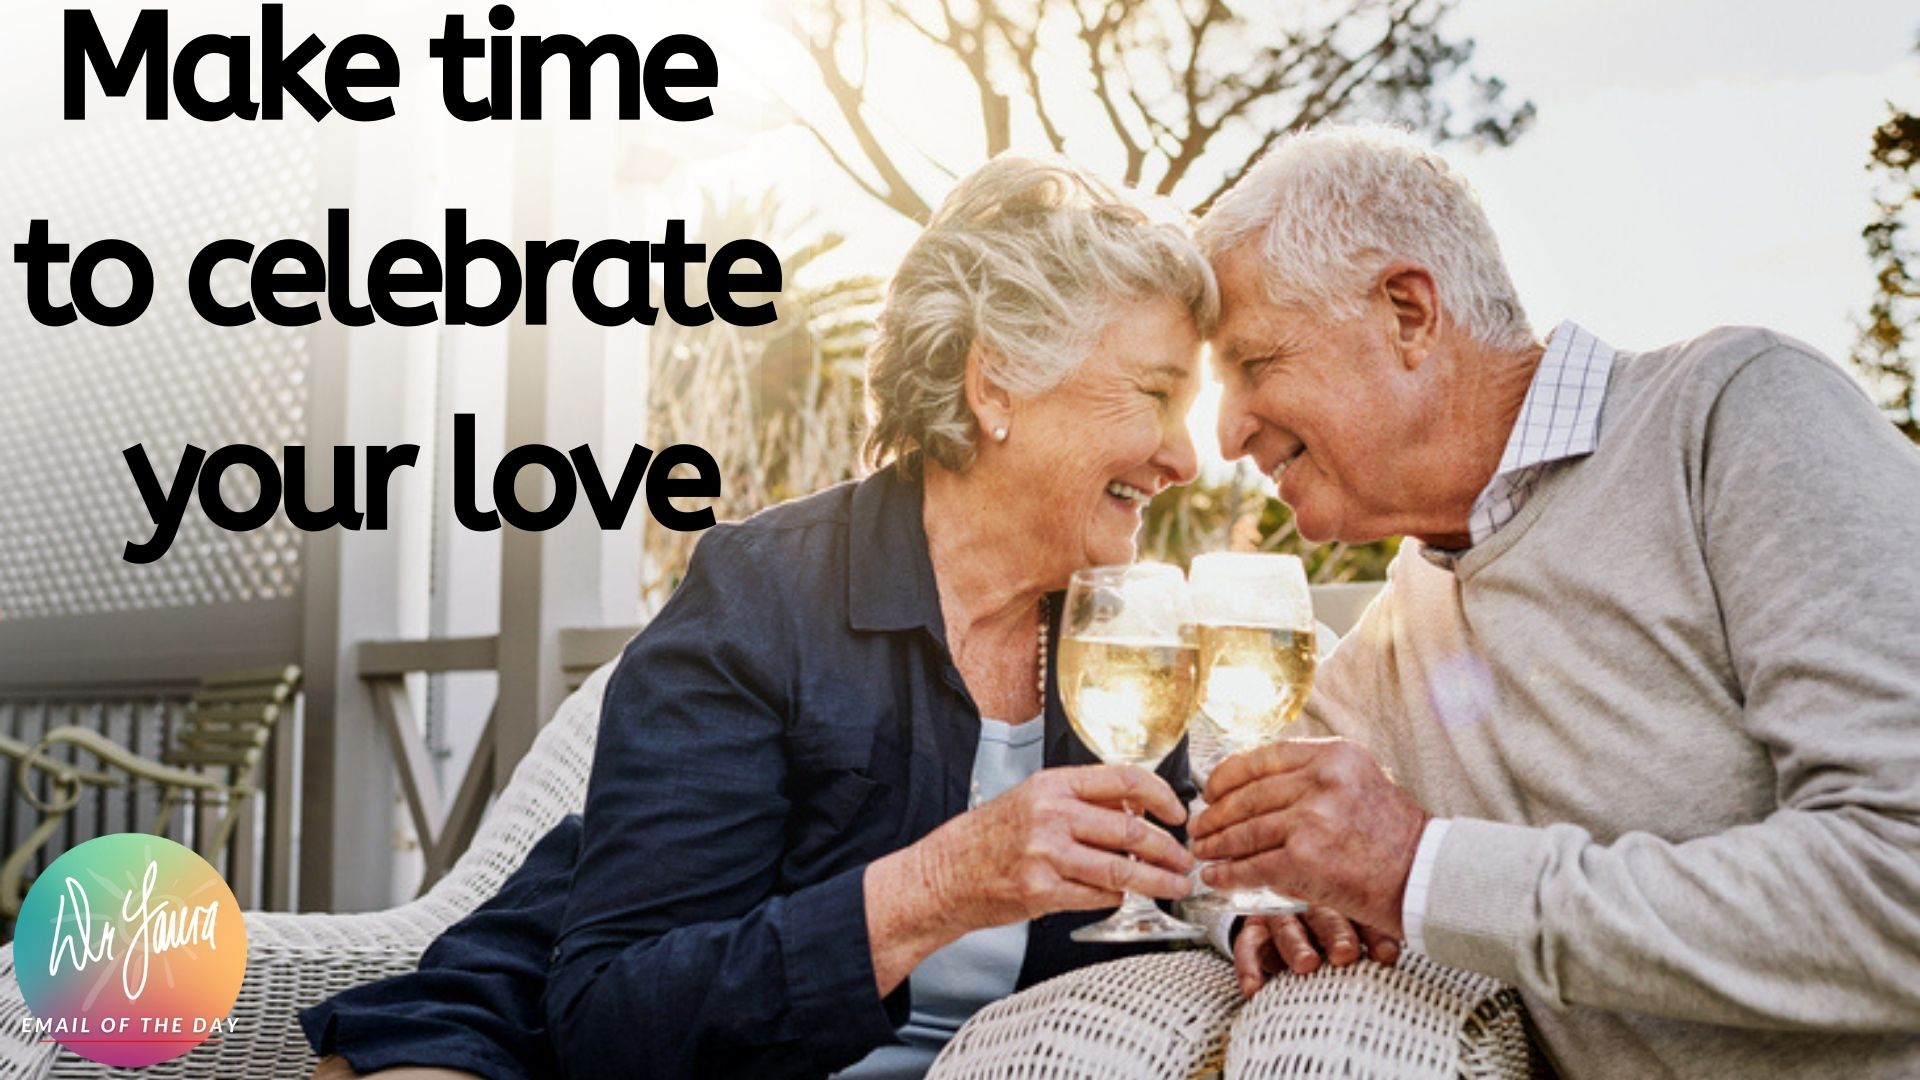 Email of the Day: I Still Have Cocktail Hour With My Husband Even Though He's Gone